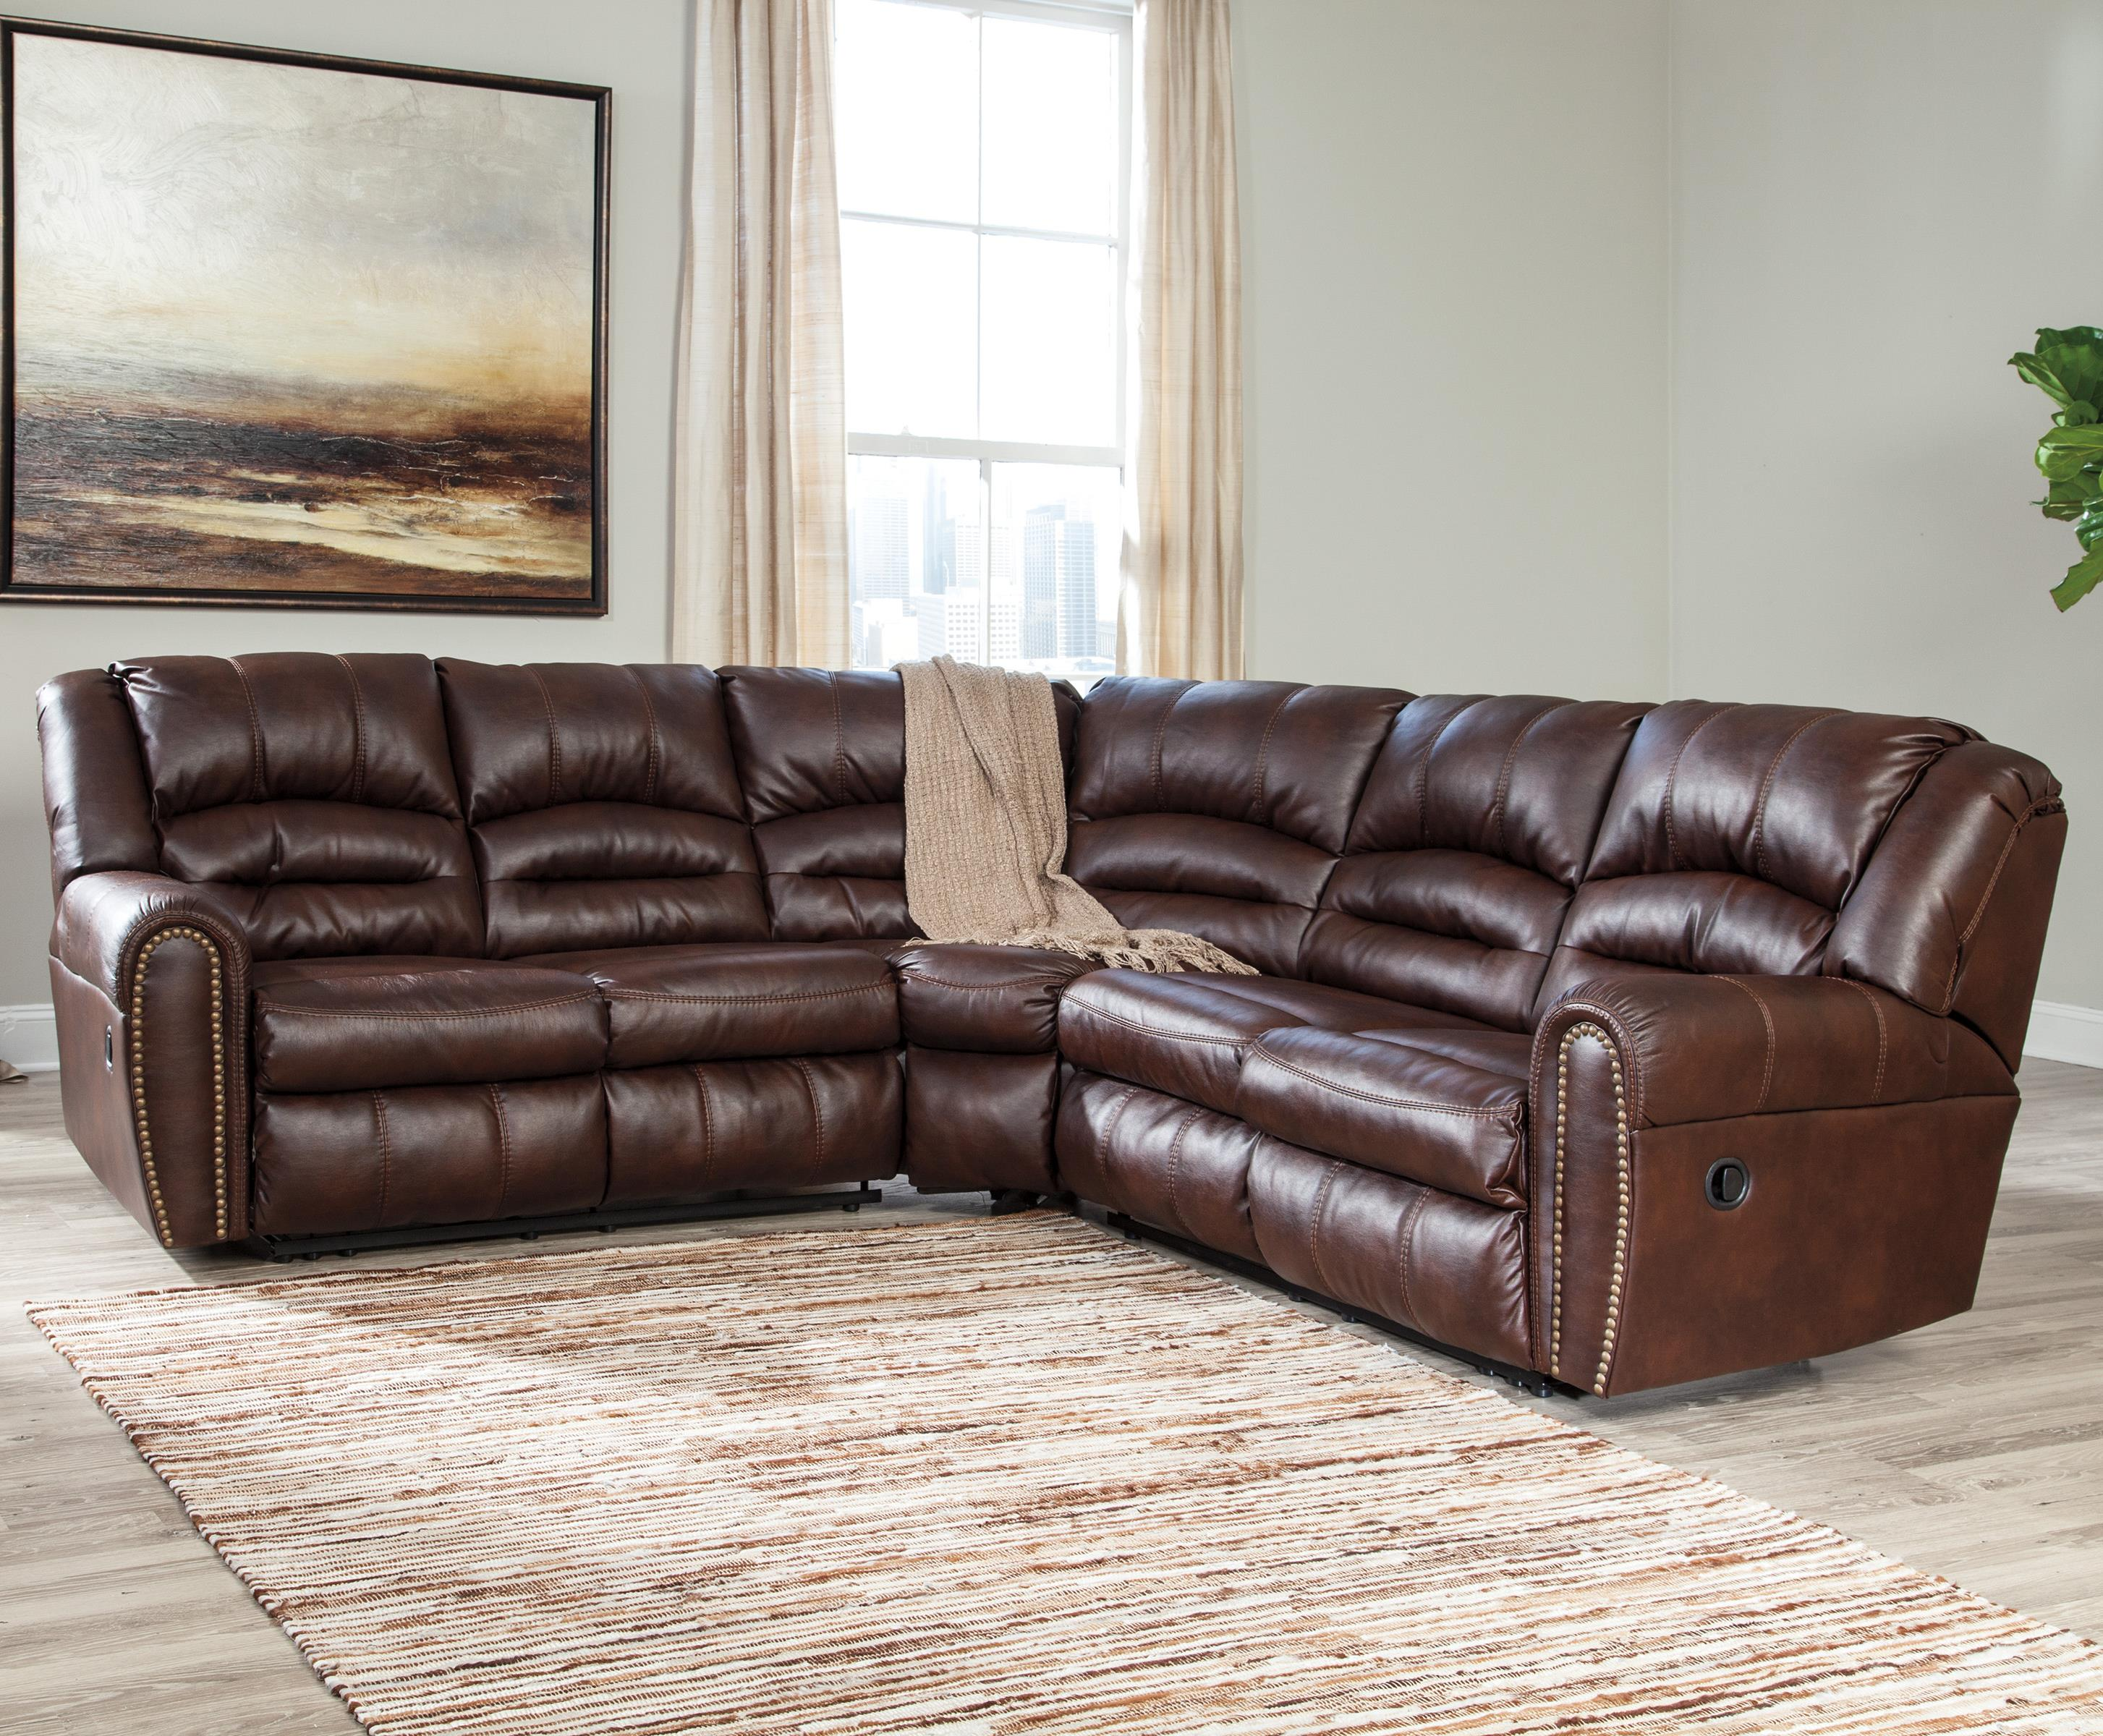 Signature Design by Ashley Manzanola Reclining Sectional - Item Number: 5120248+49